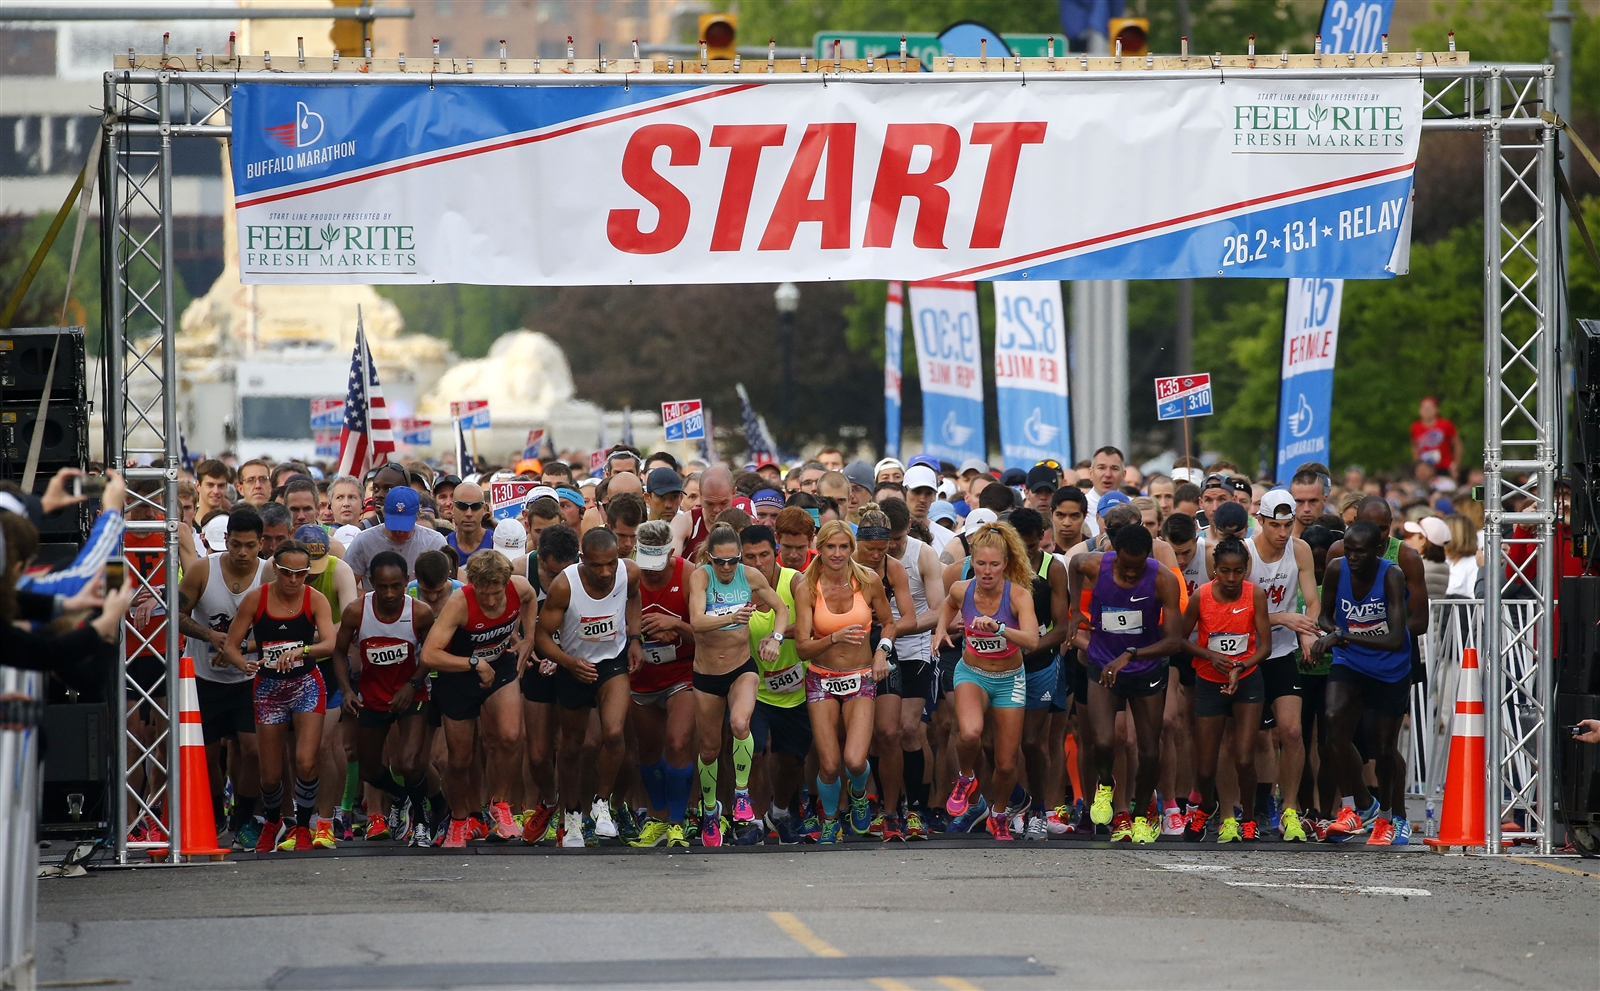 Runners take off from the start of the Buffalo Marathon on Sunday, May 28, 2017.